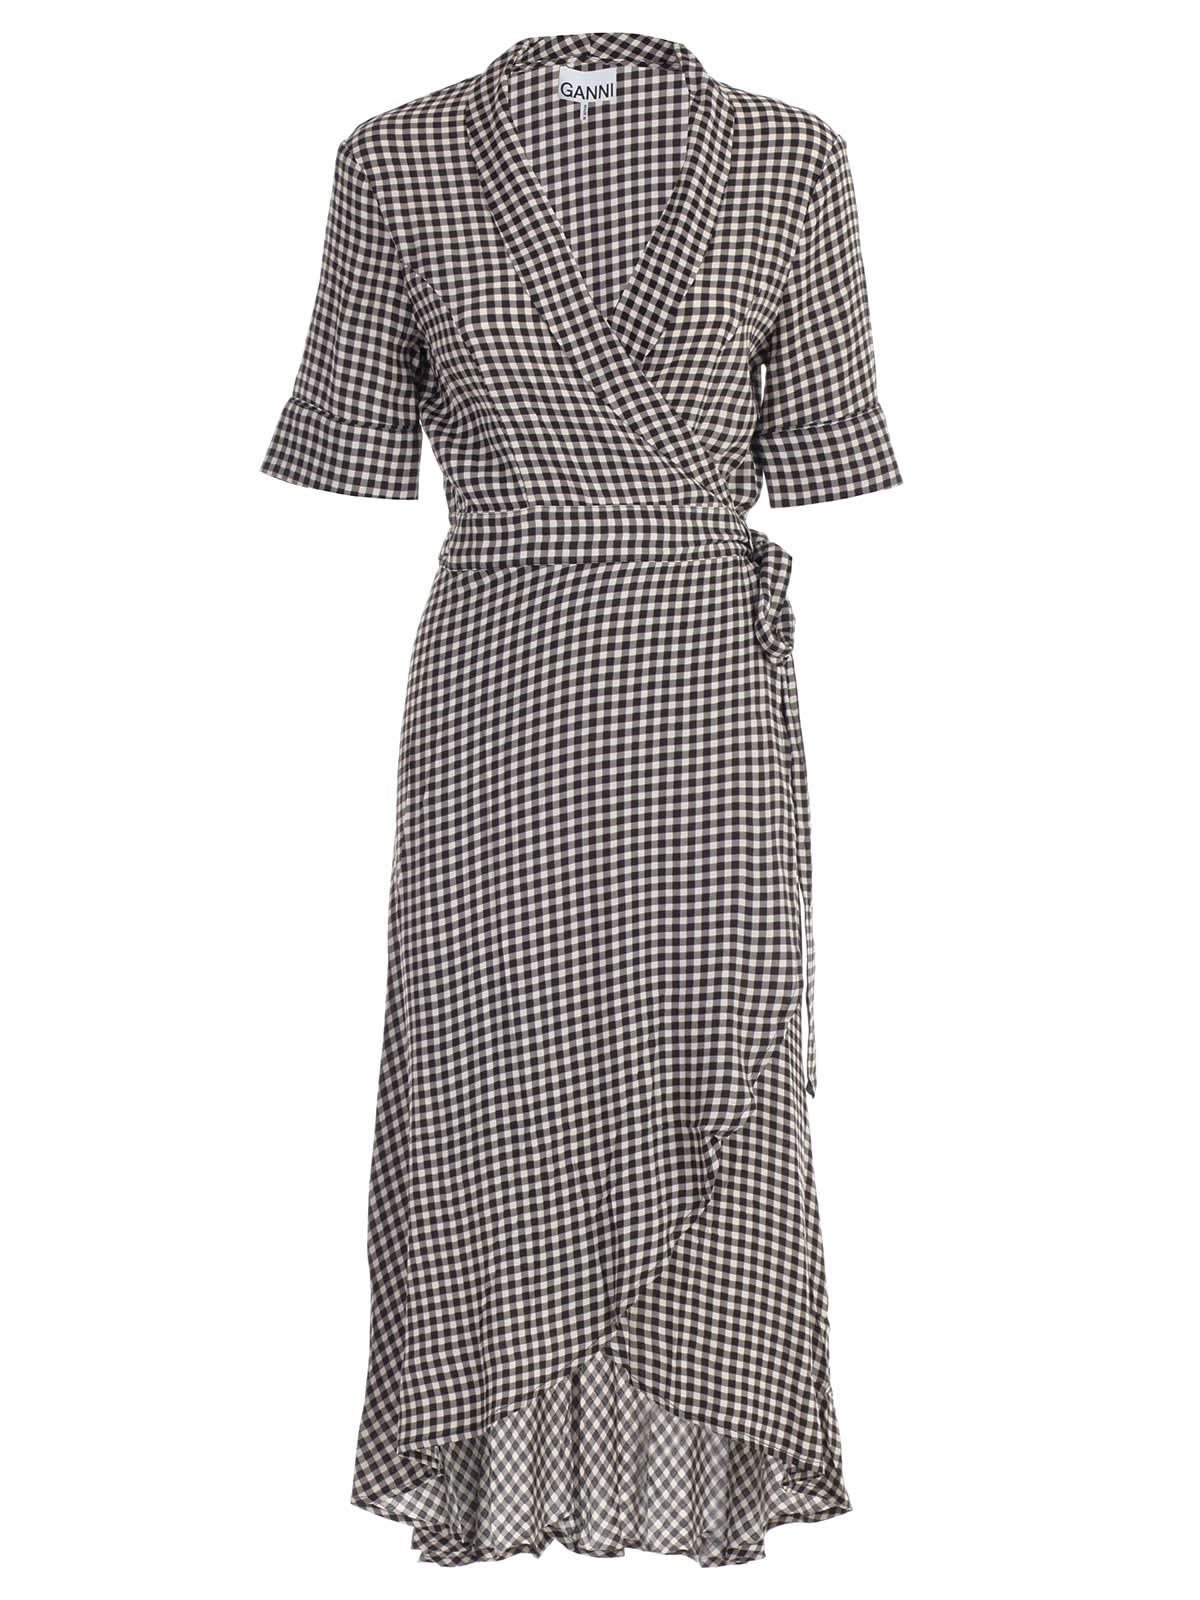 Ganni Dress L & s Check